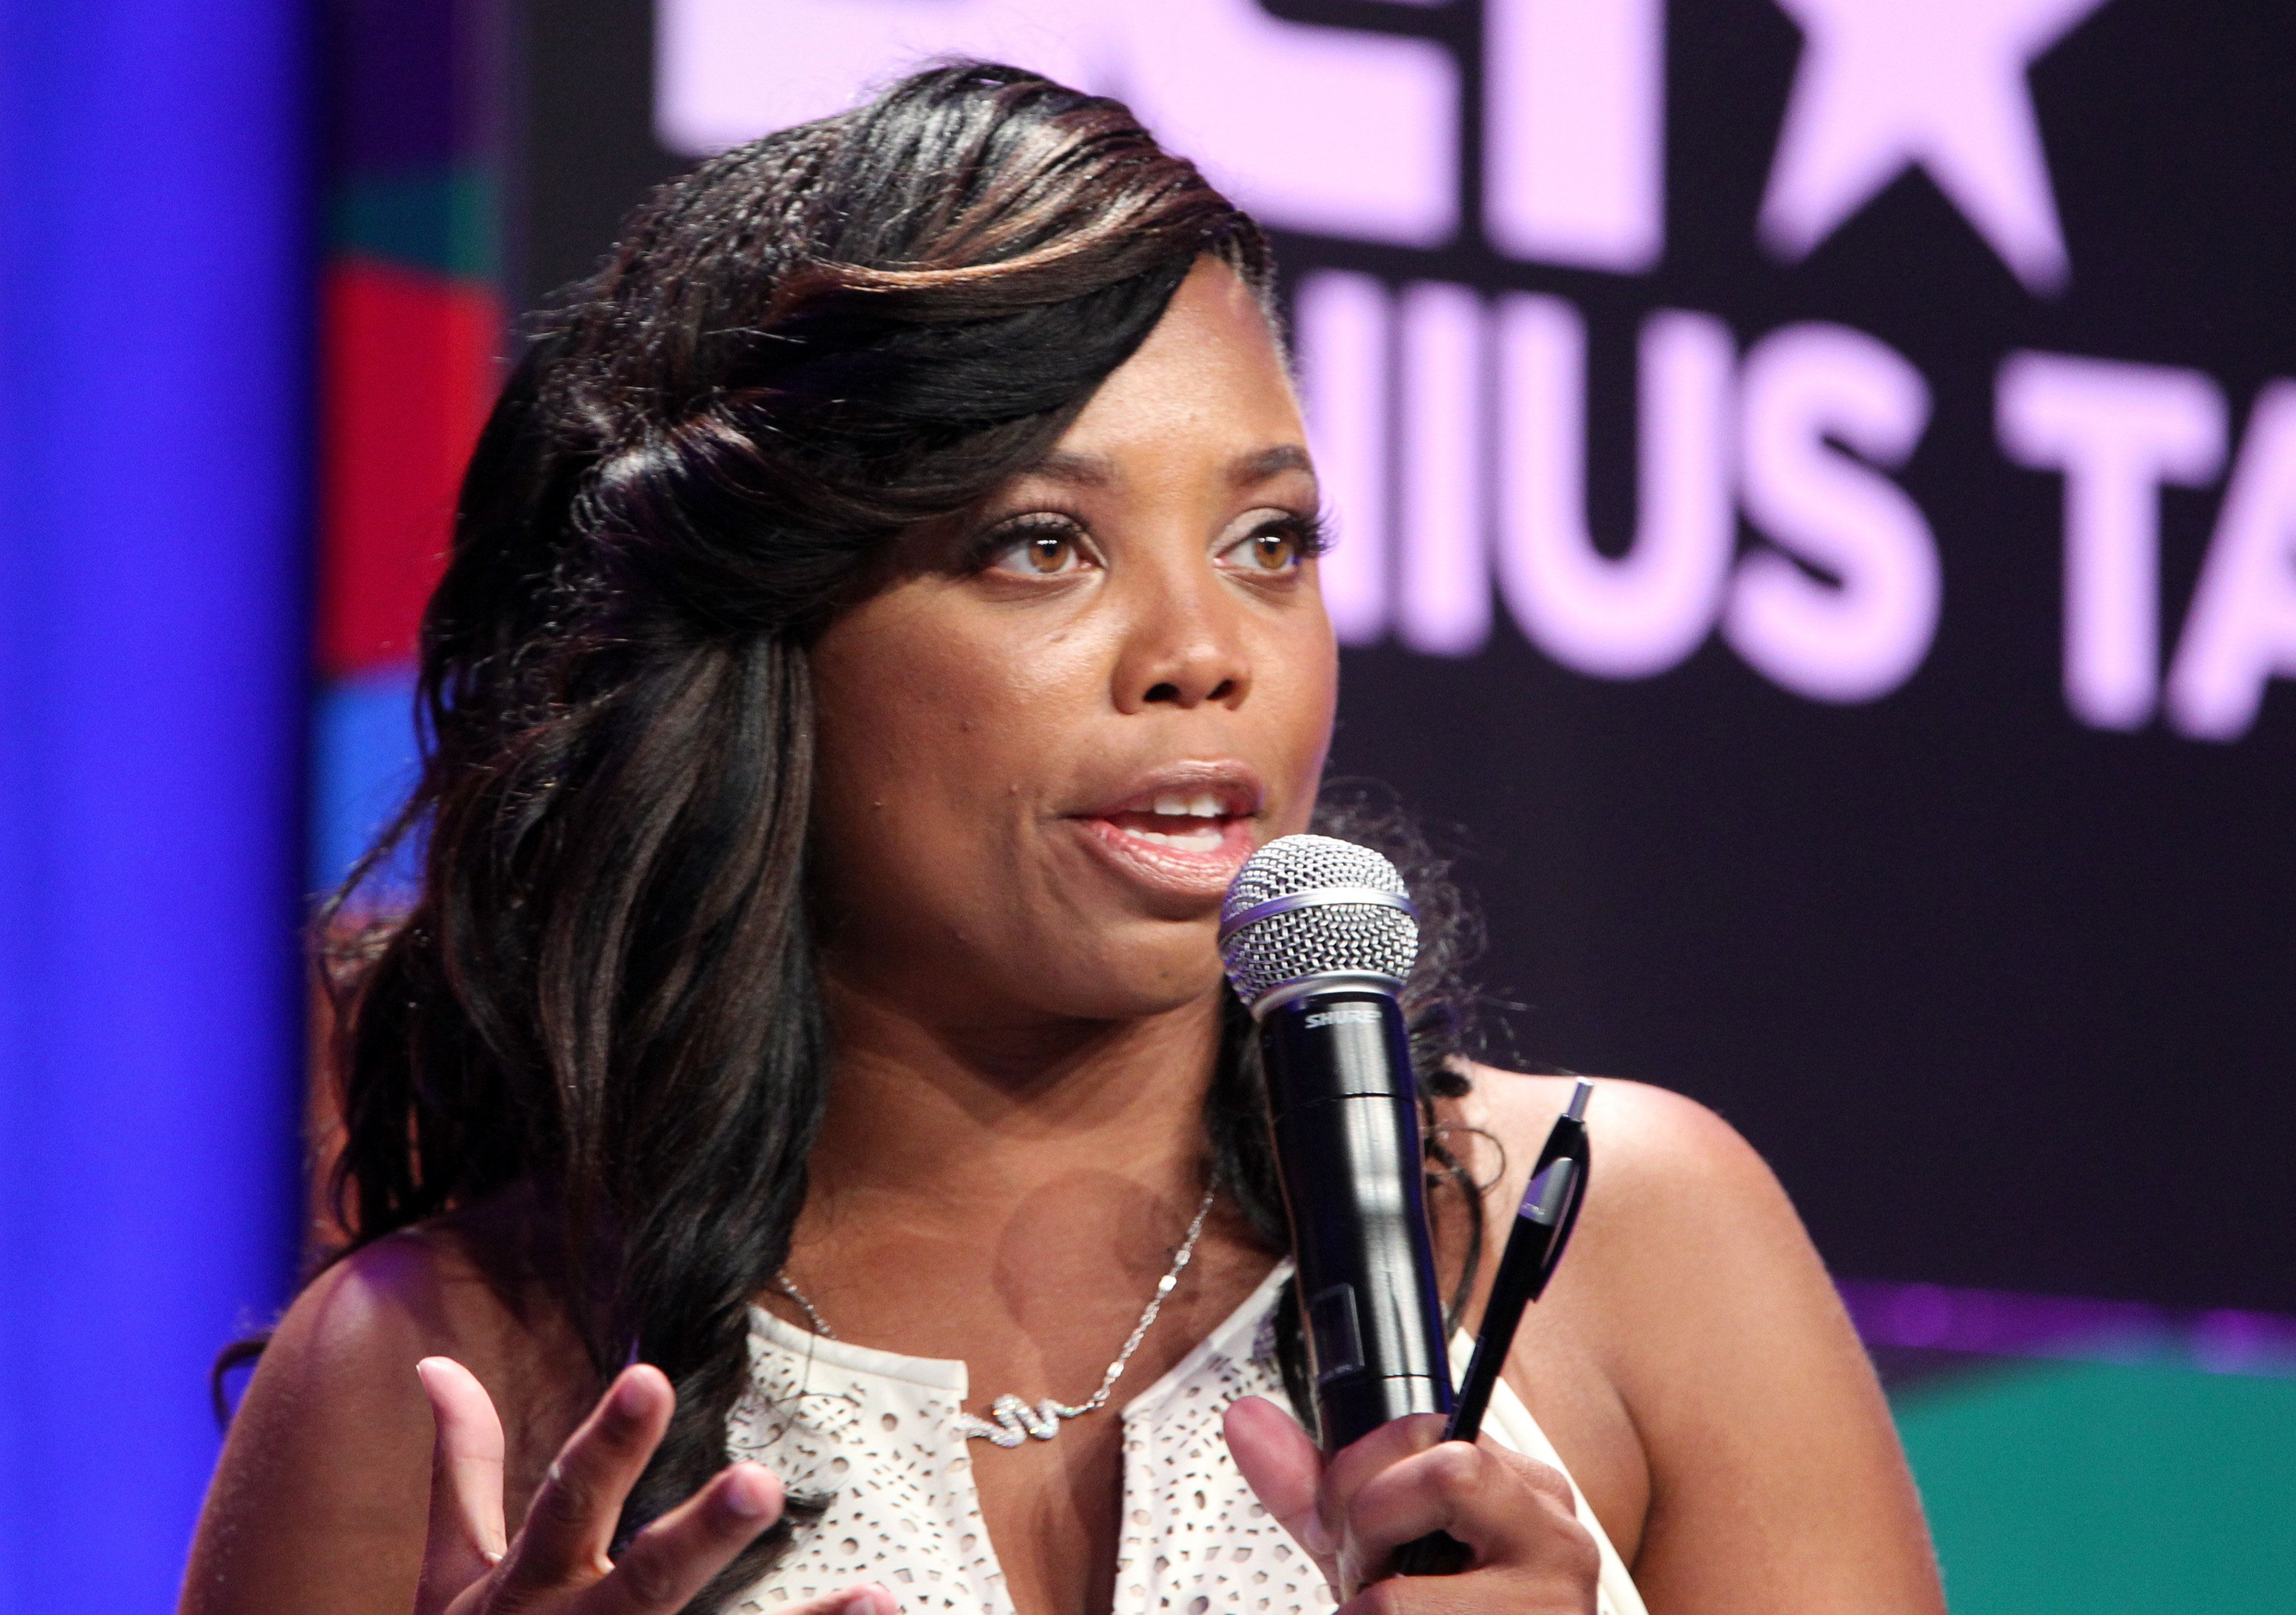 Jemele Hill is sorry she put ESPN in a bad light but plans to be back on Twitter